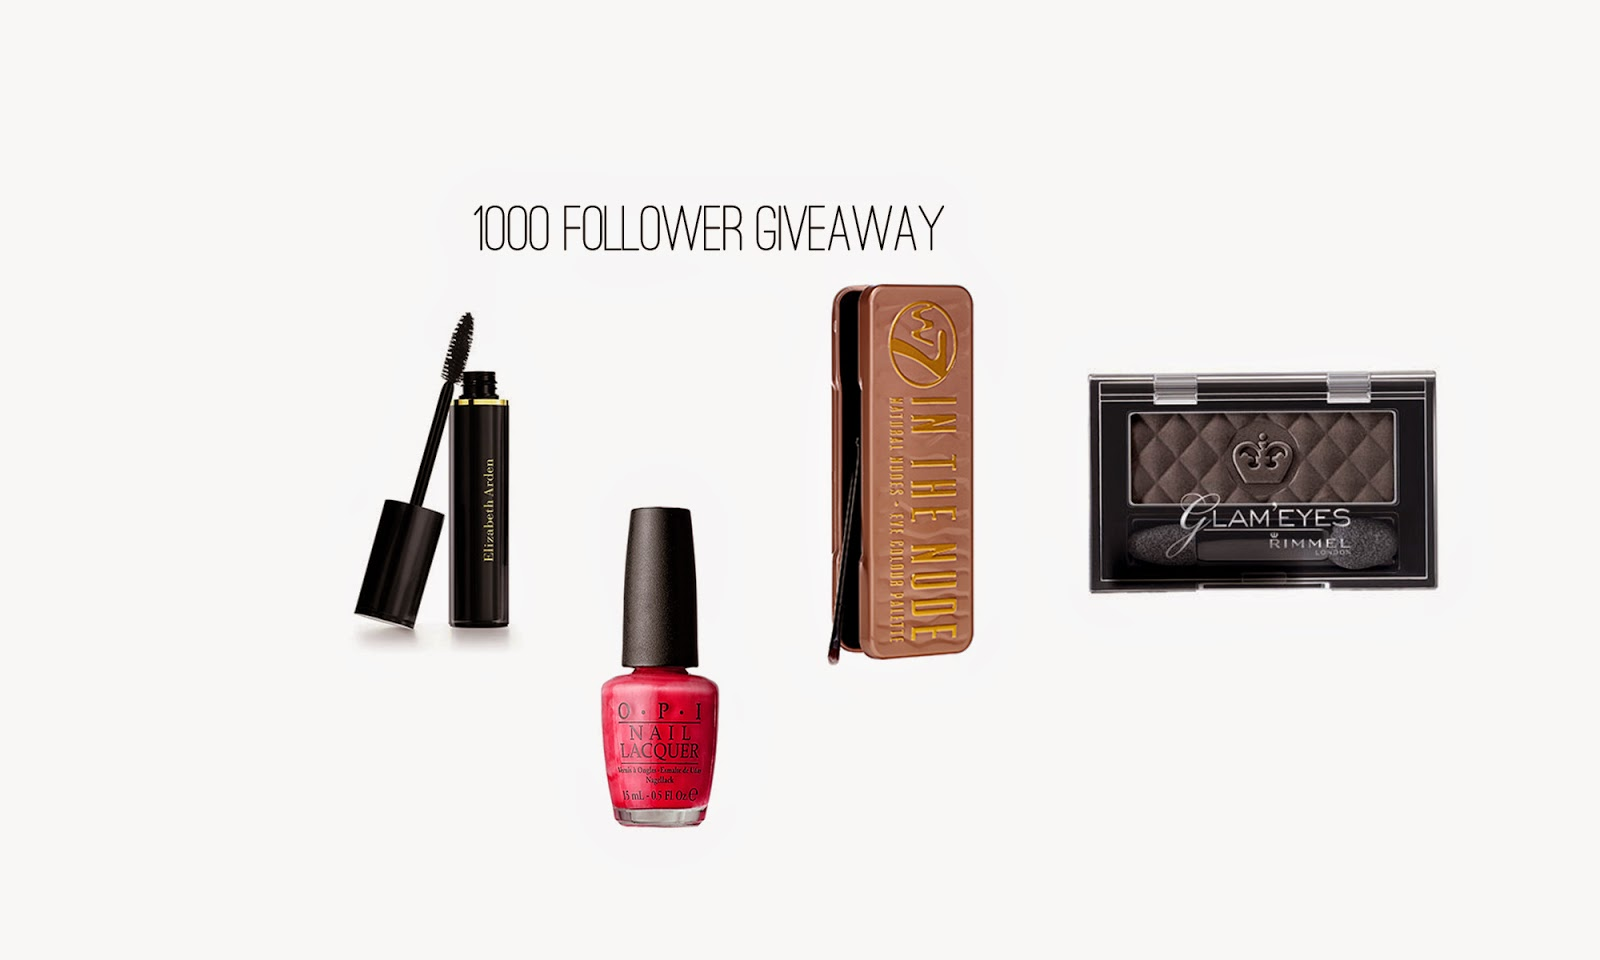 1000 follower giveaway!!